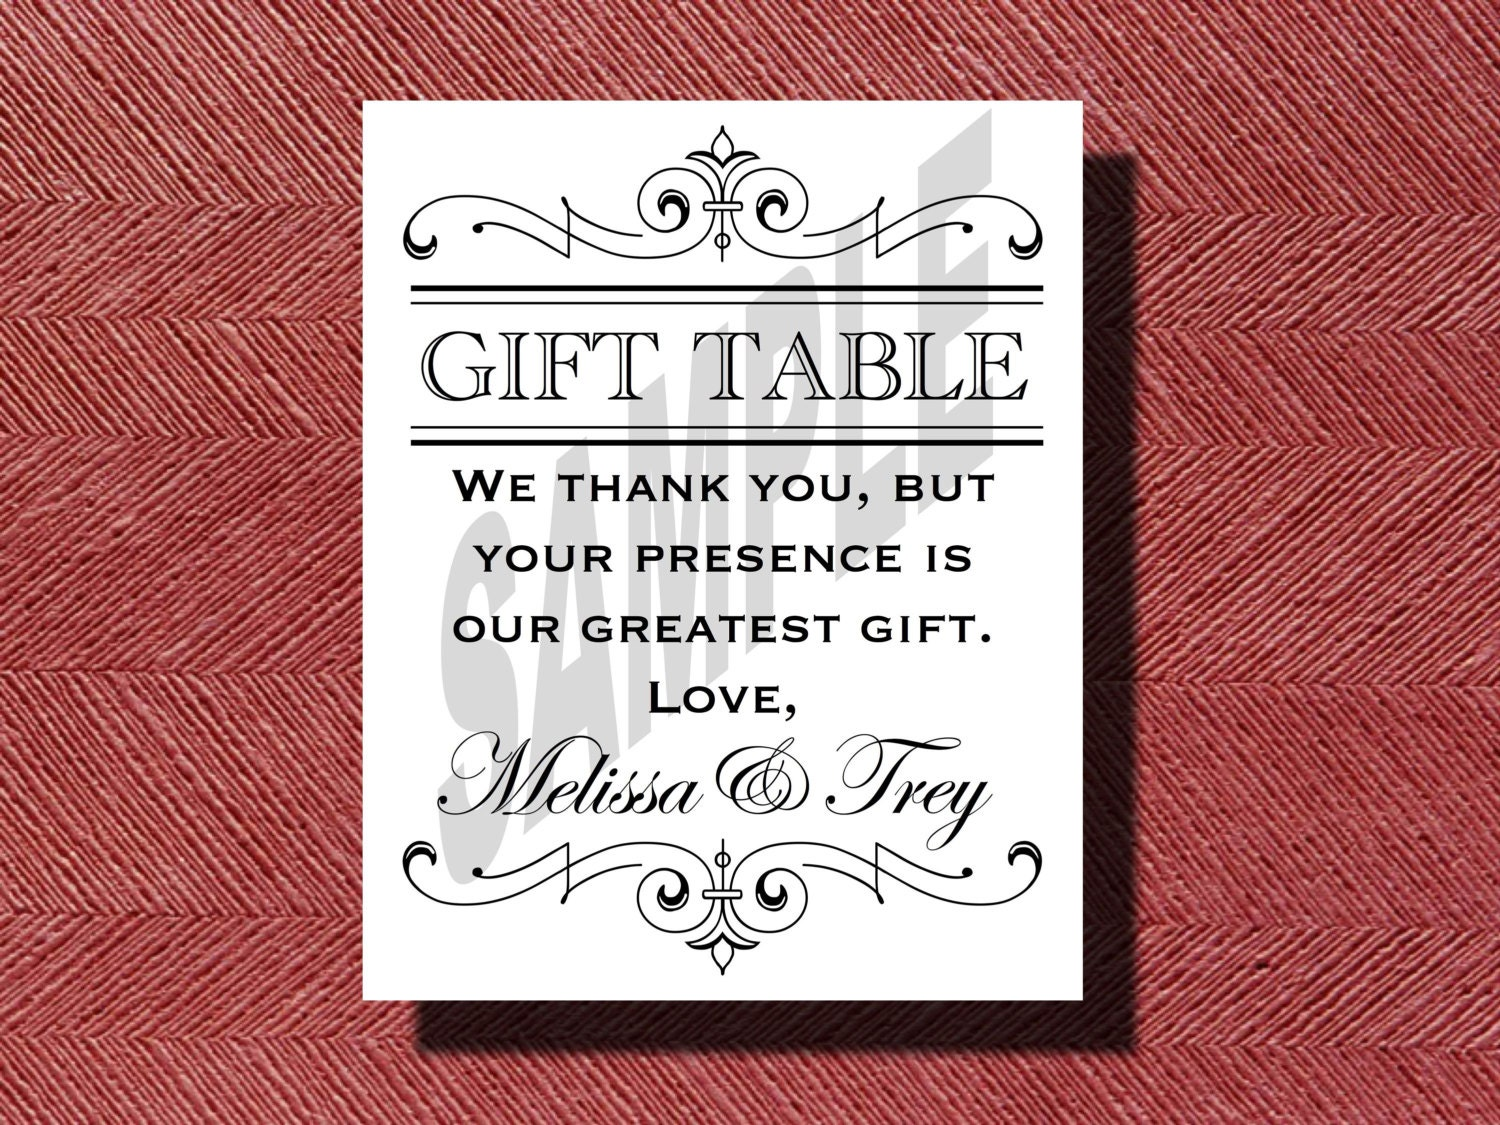 Printable wedding reception gift table sign for Table 6 gift card